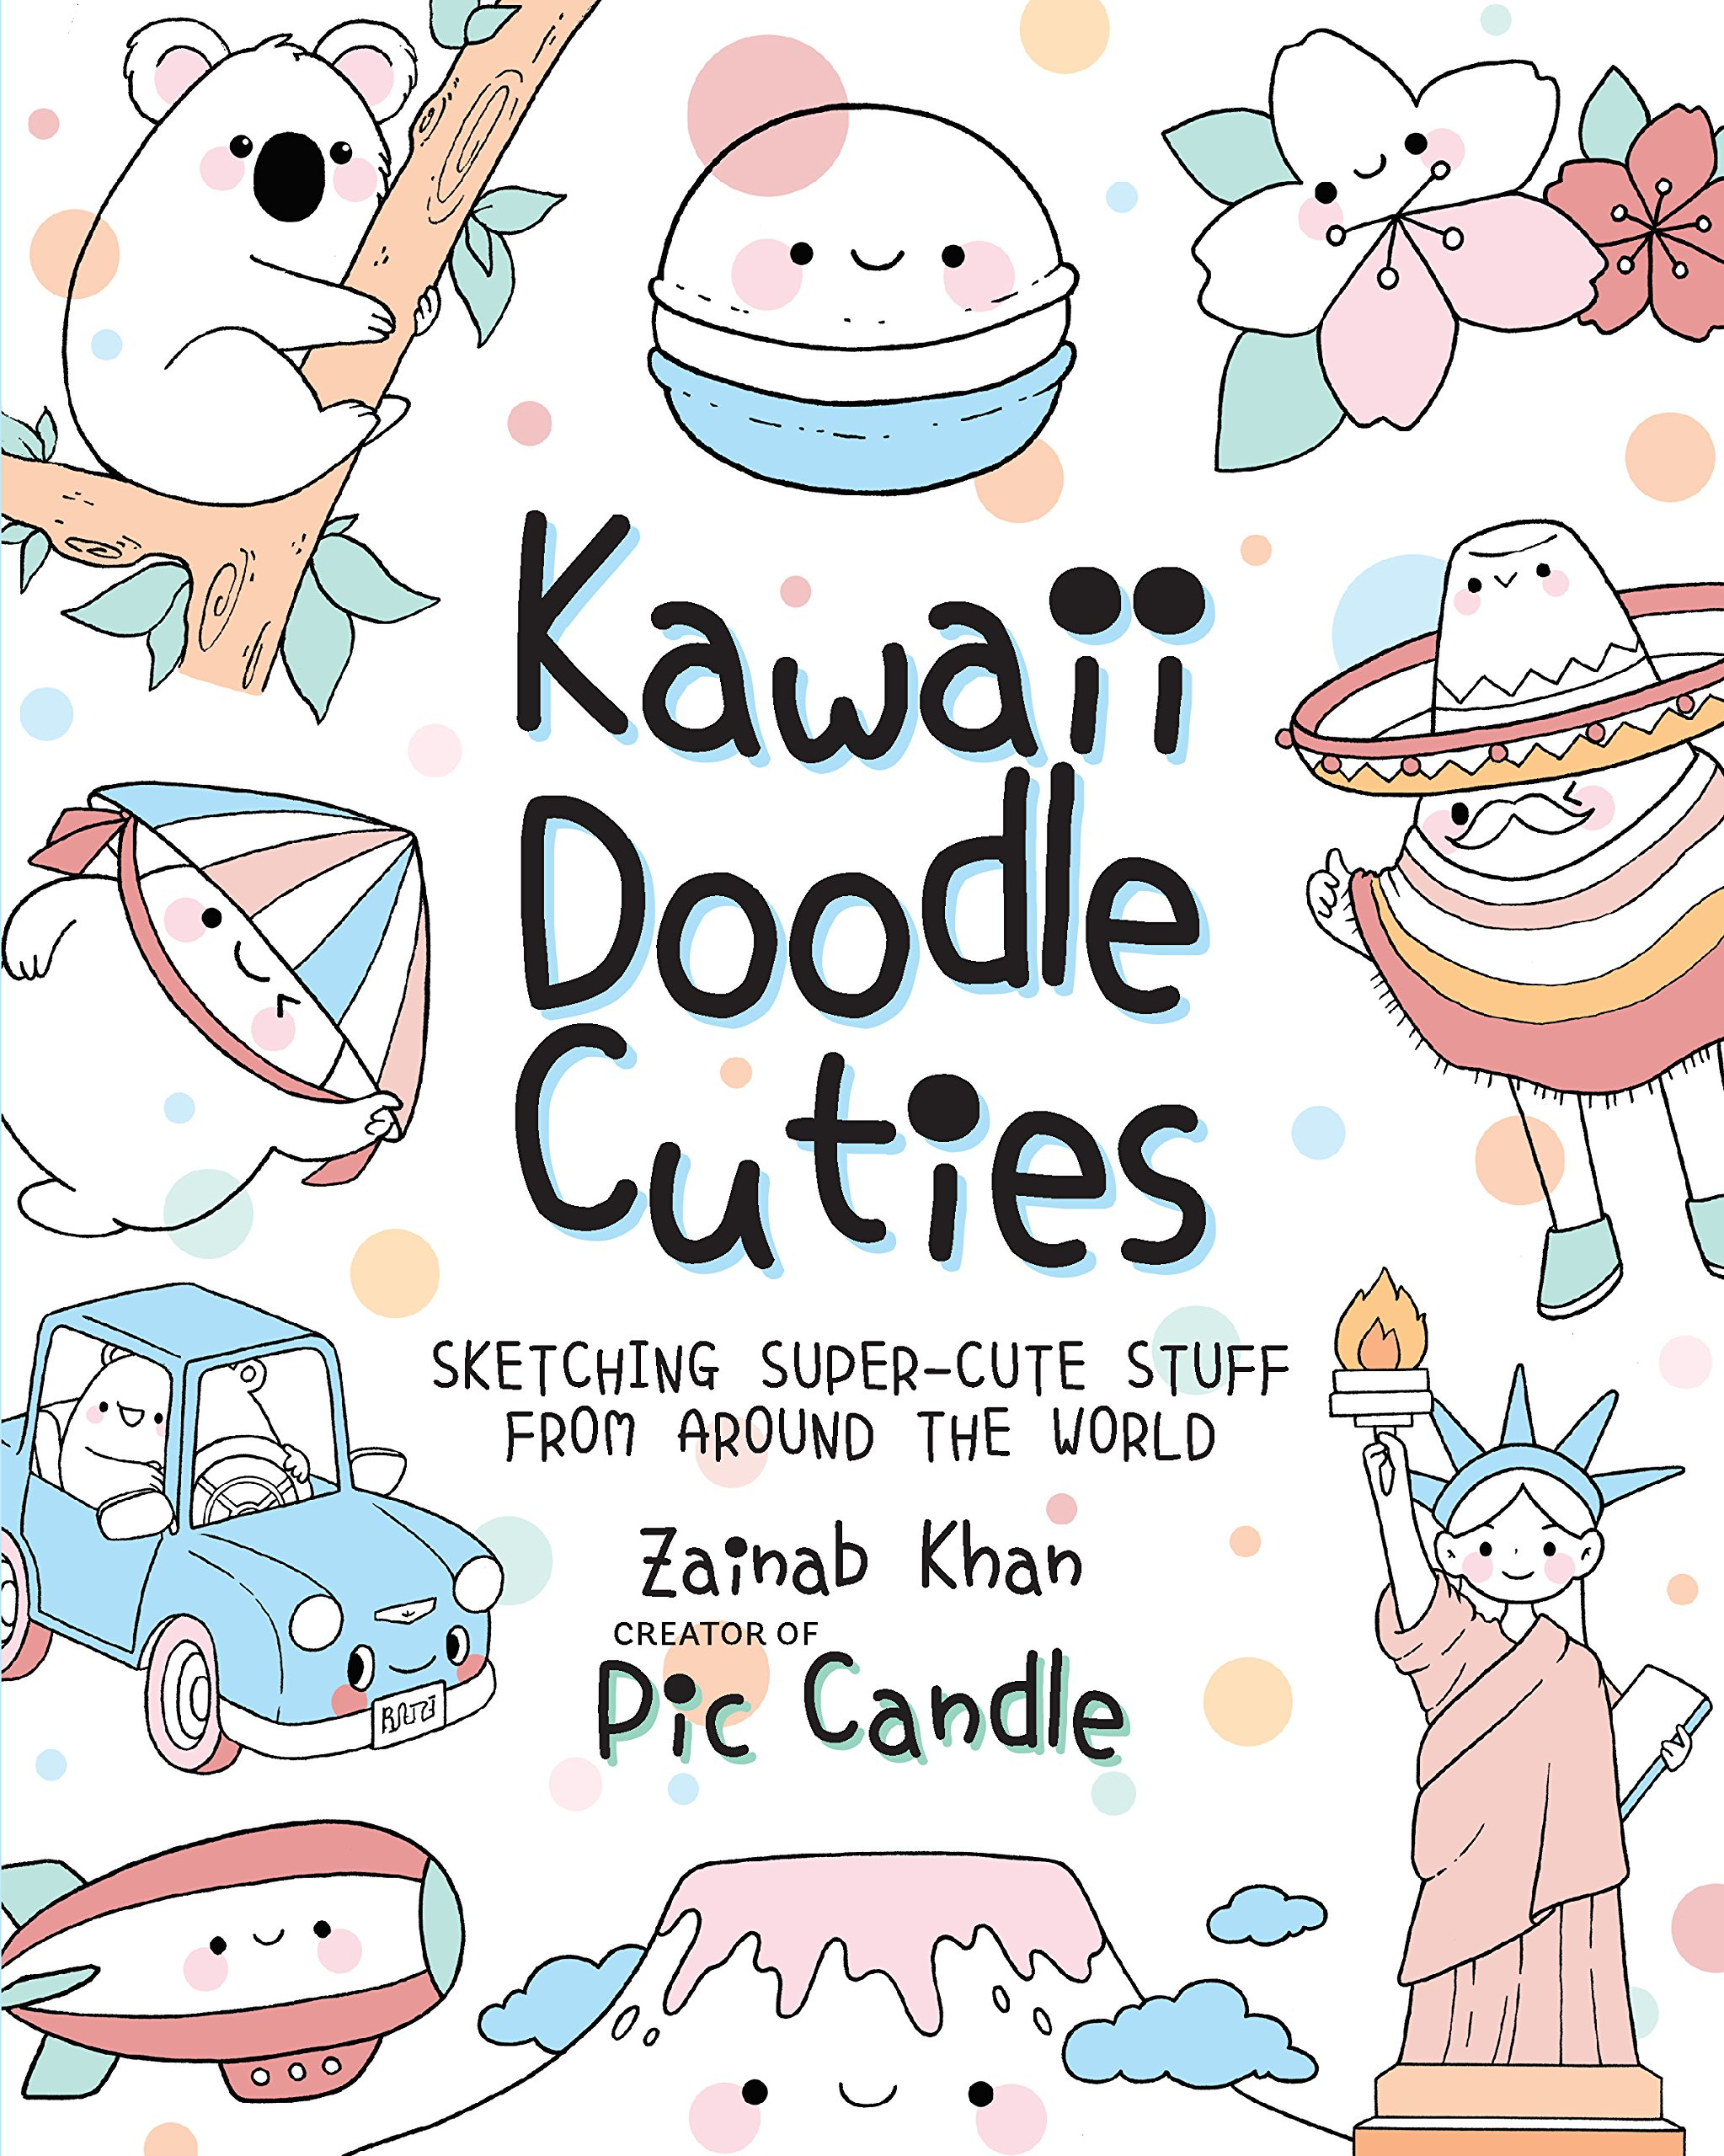 Kawaii Doodle Cuties: Sketching Super-Cute Stuff from Around the World: Pic  Candle, Zainab Khan: 9781631065682: Amazon.com: Books